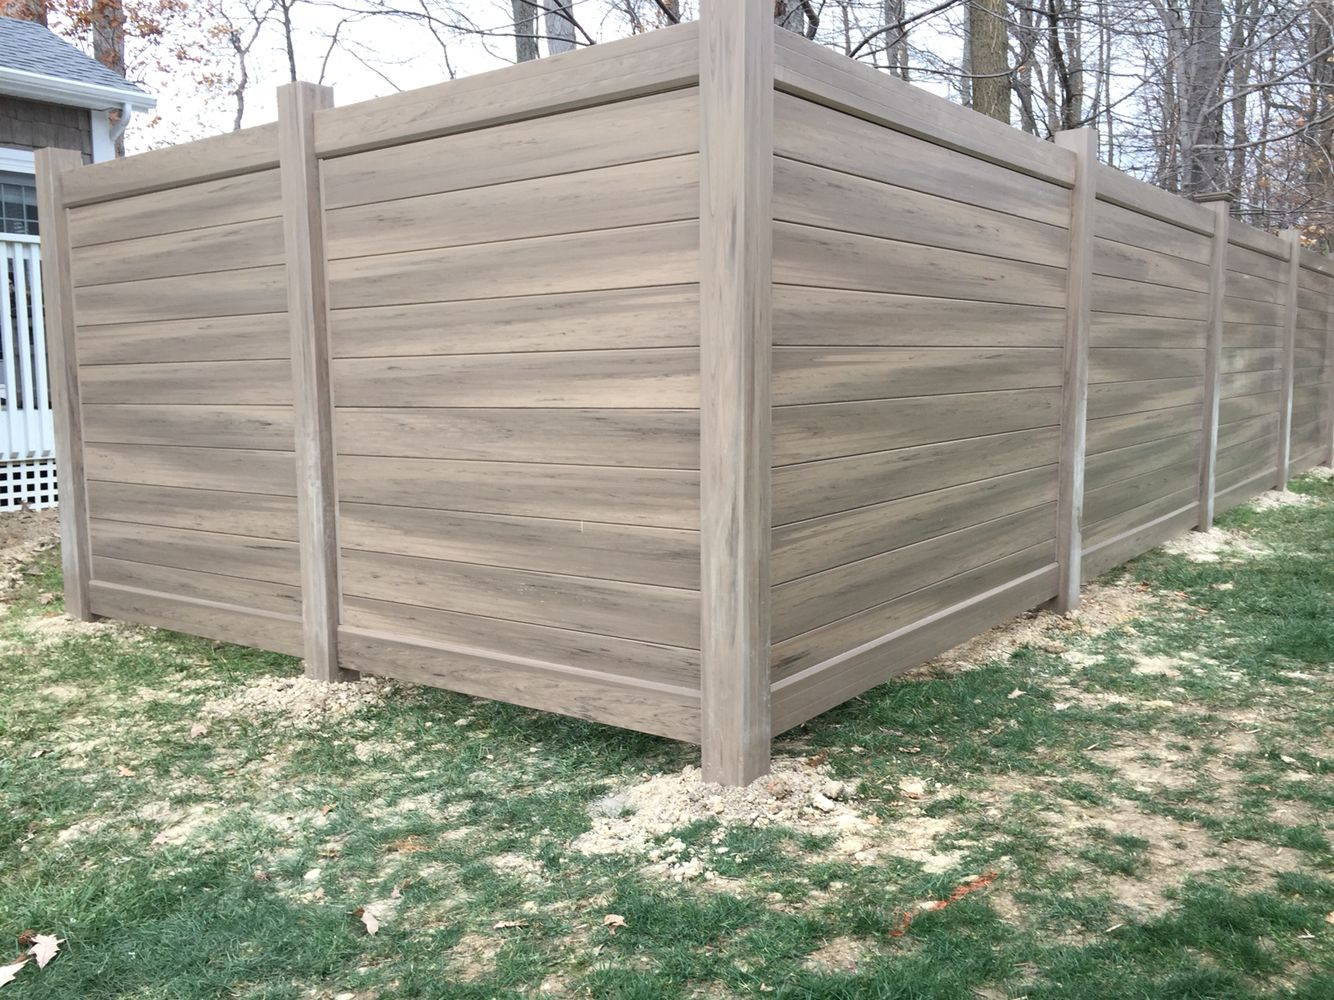 Our New Style Of Privacy Fence 6 Green Teak Pickets That We Ran Horizontally To Get True Wood Grain Look Awesome A Beautiful House